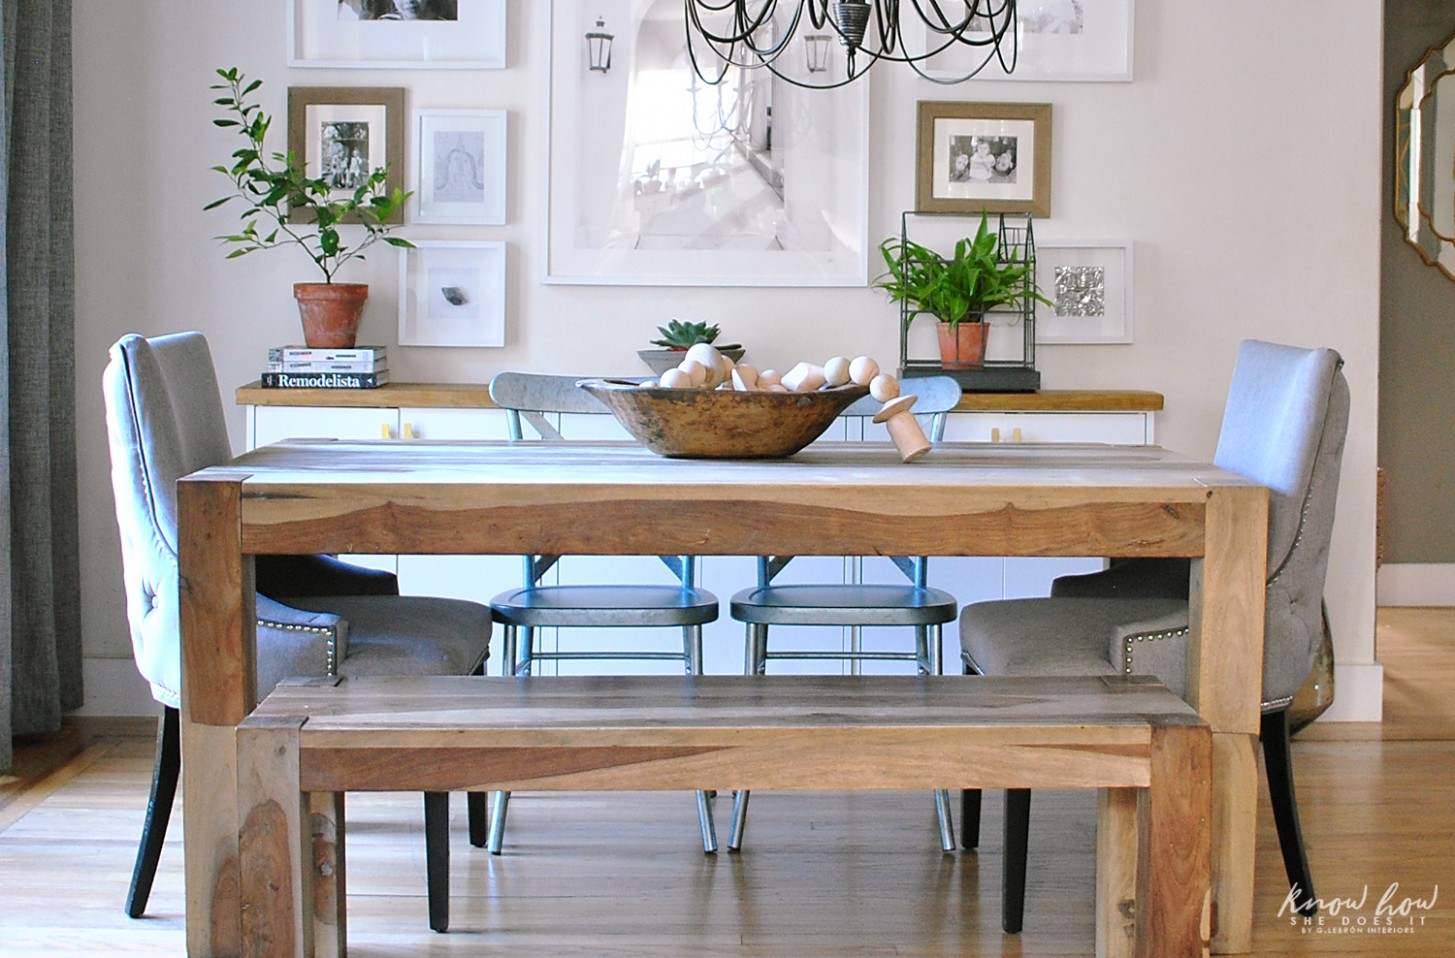 Simple dining room decor for a transitional season - Dining Room Ideas Simple